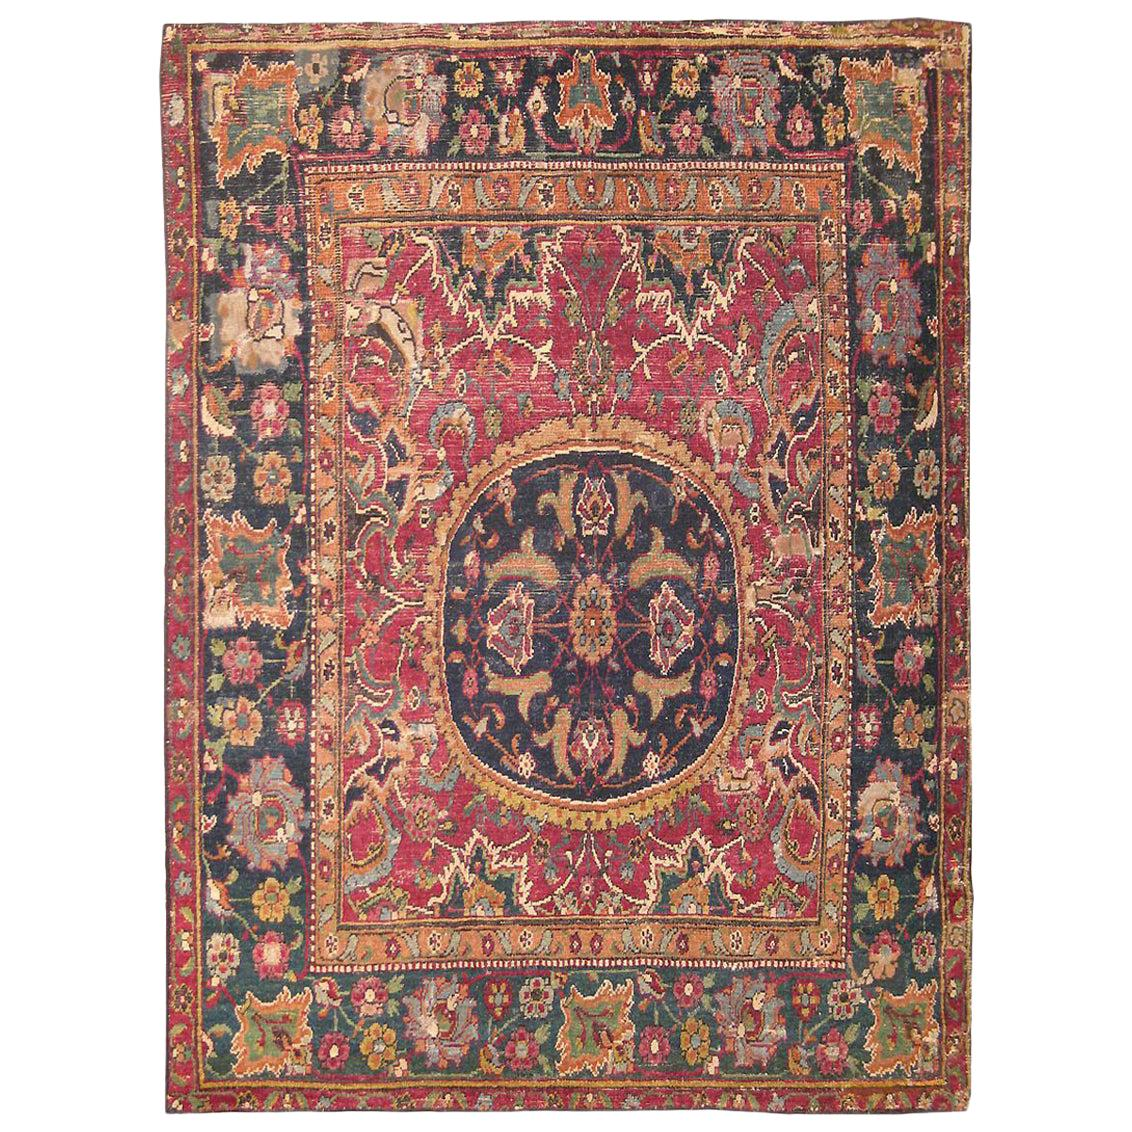 Antique 17th Century Persian Esfahan Rug. Size: 2 ft 10 in x 3 ft 6 in